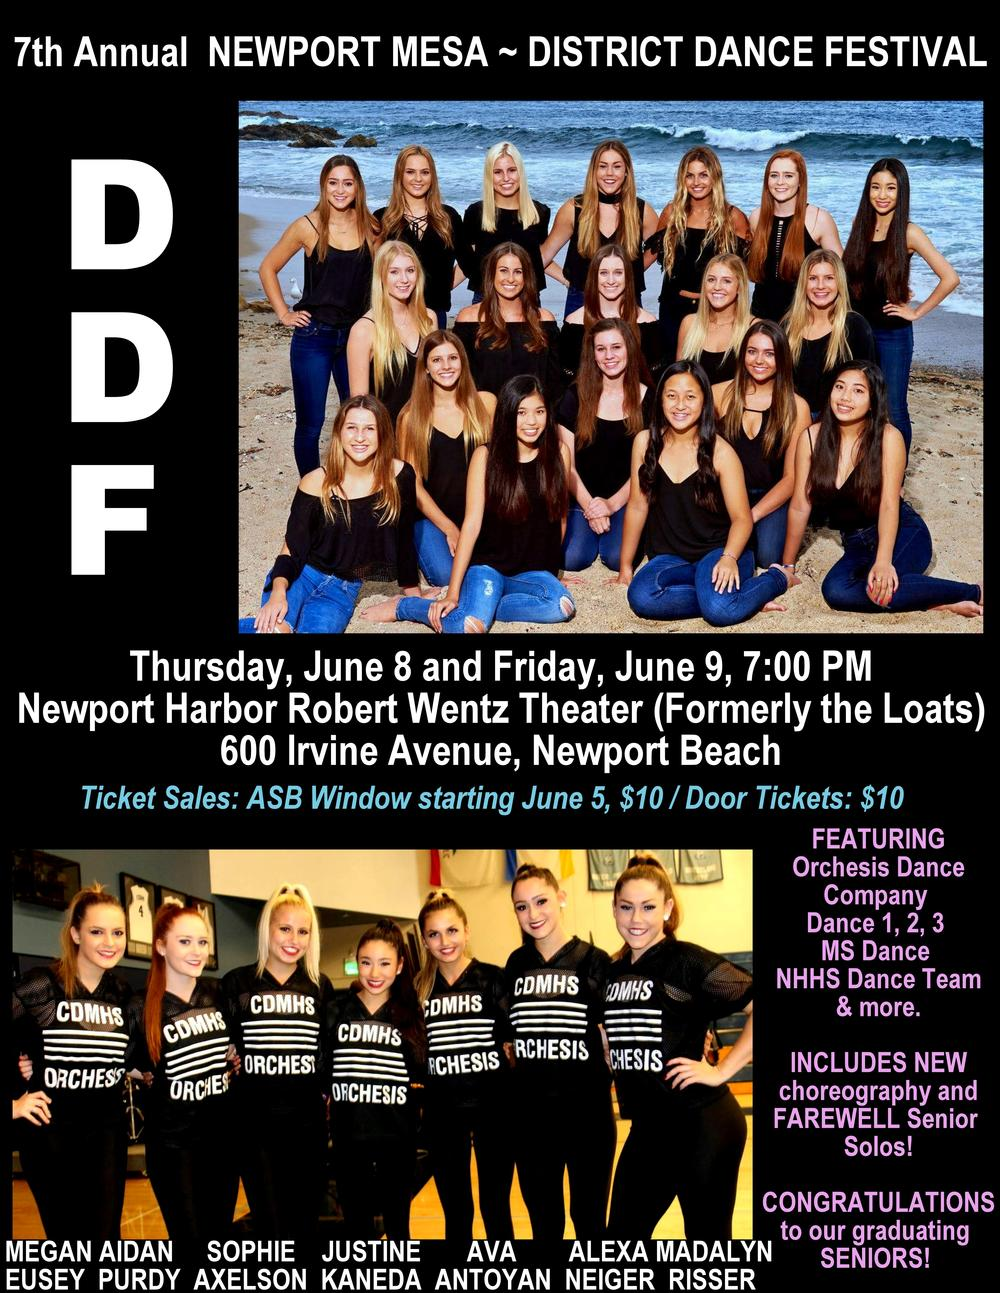 District Dancing Festival Flyer